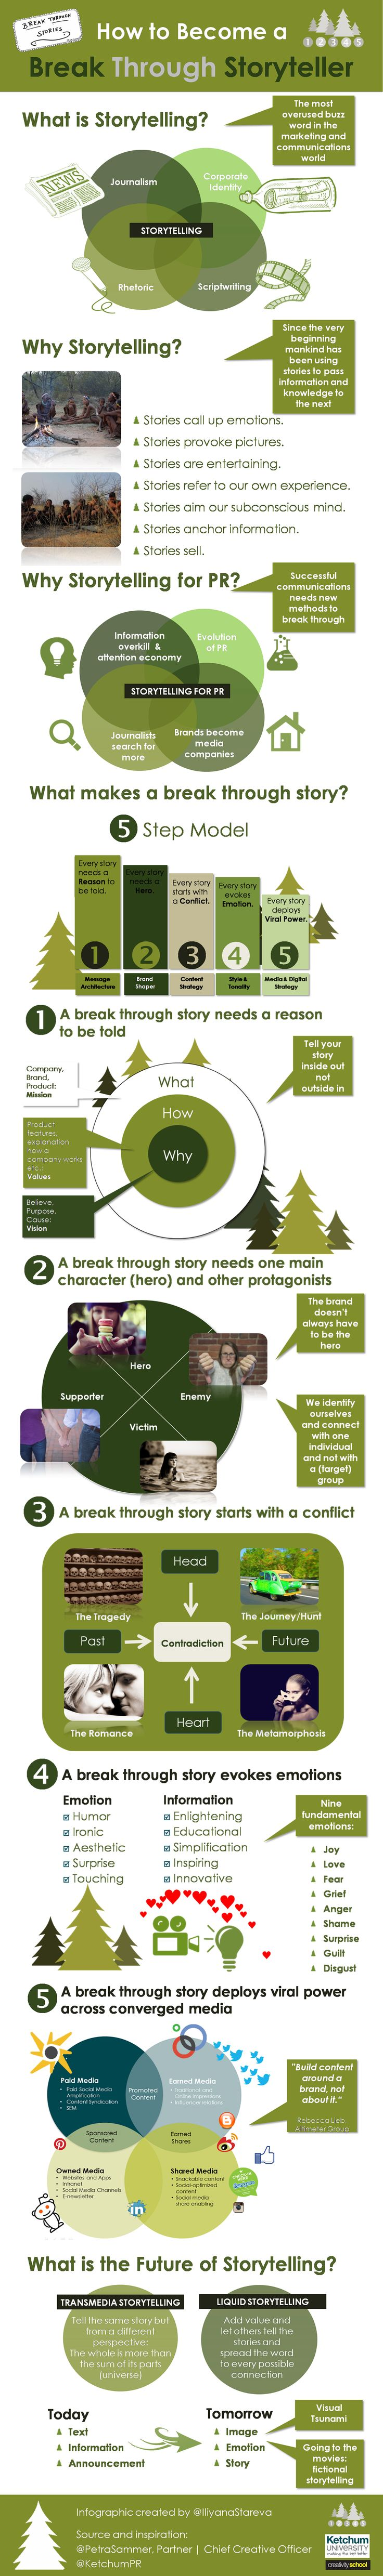 5 ways to translate your storytelling to PR:How to Become a Break Through Storyteller #infographic